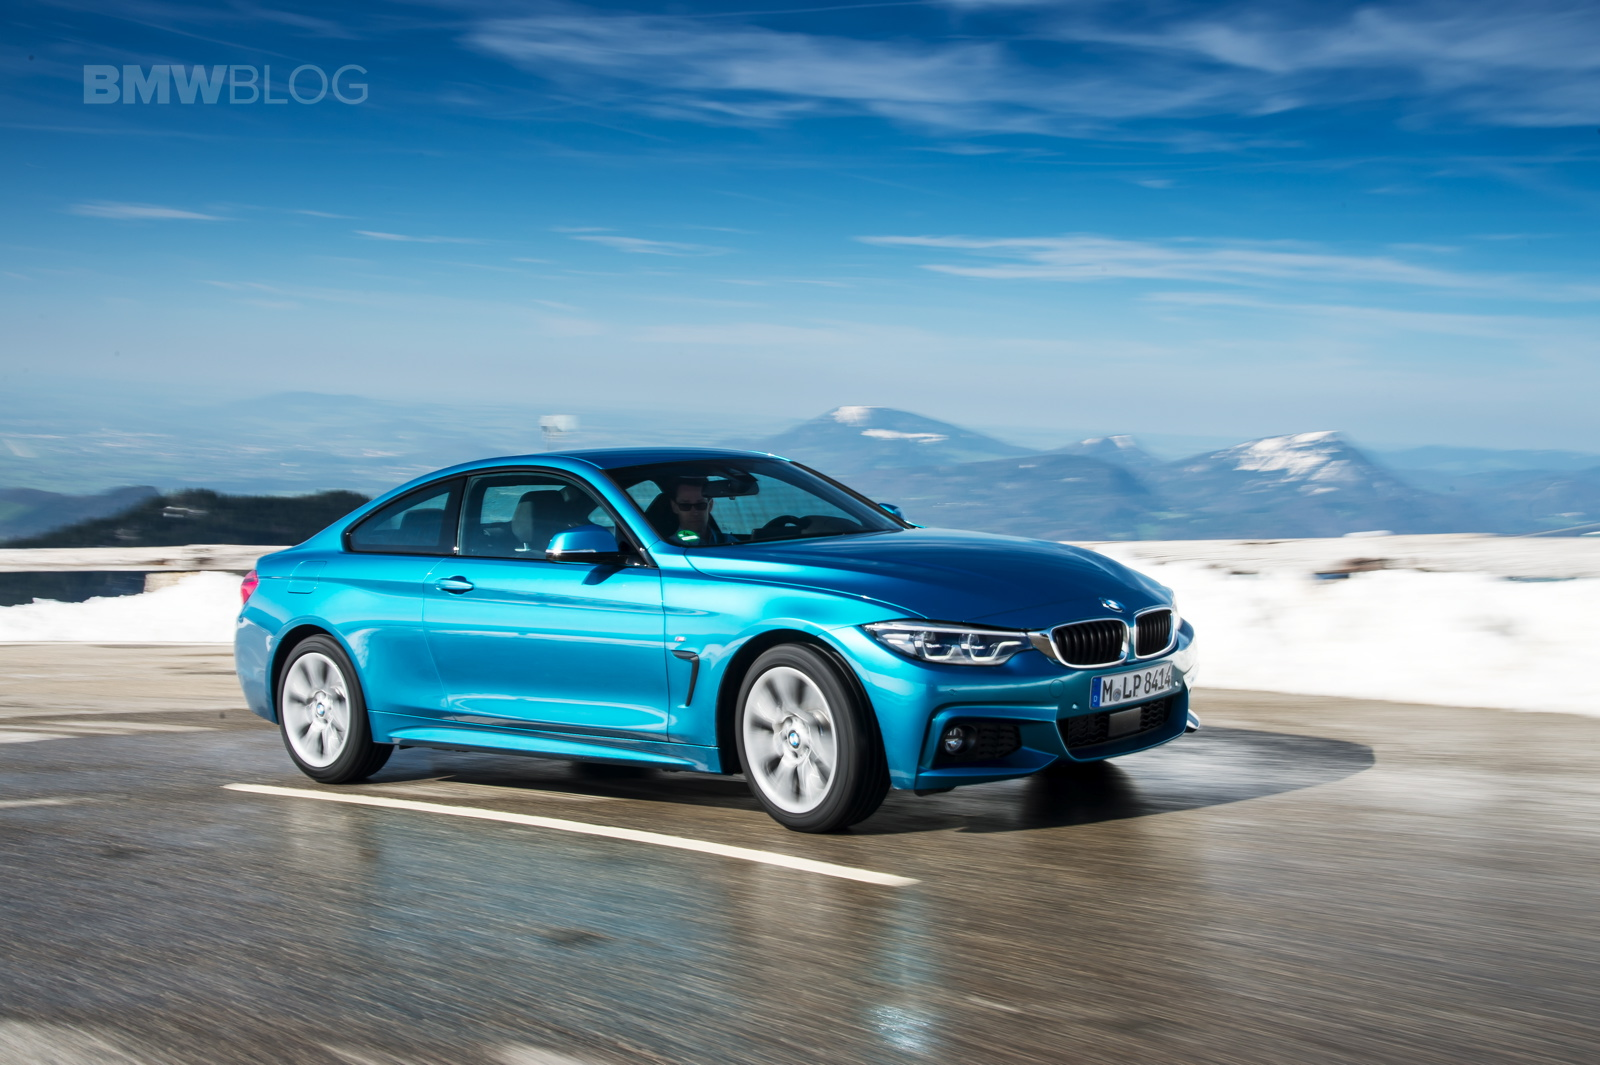 2017 BMW 4 Series Coupe test drive 18